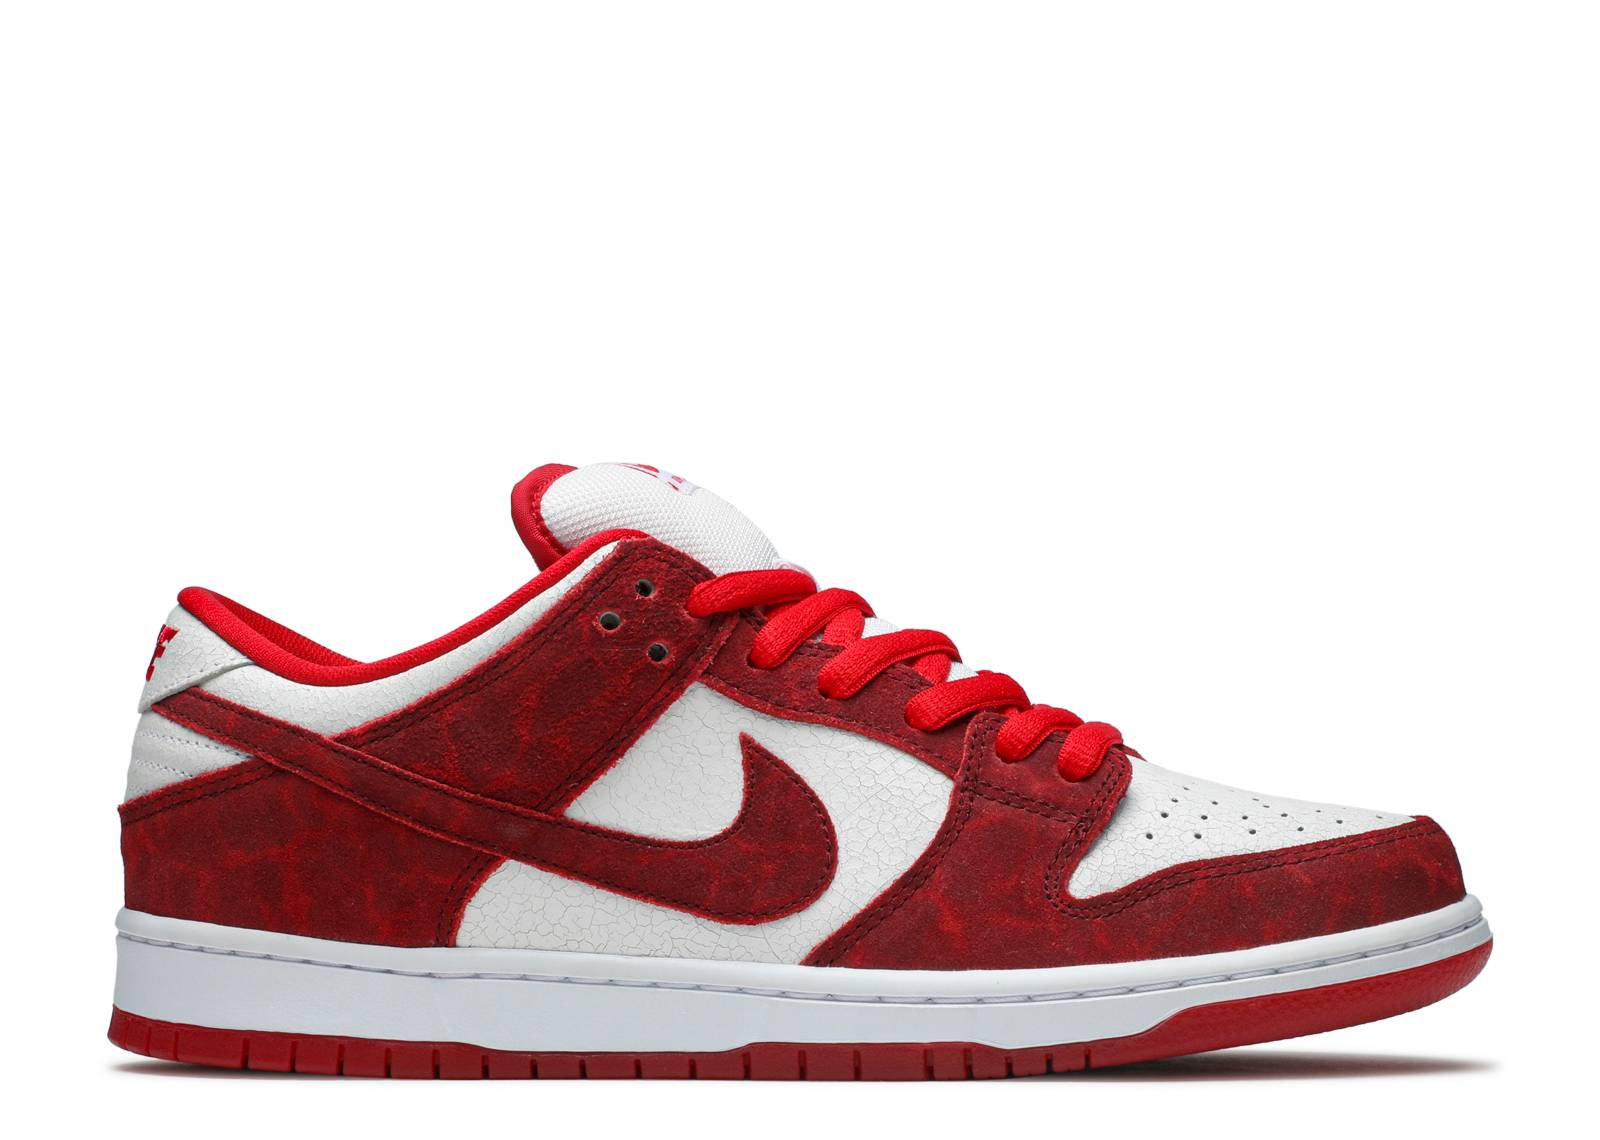 Dunk Low Premium Sb Valentines Day Nike 313170 662 Unvrsty